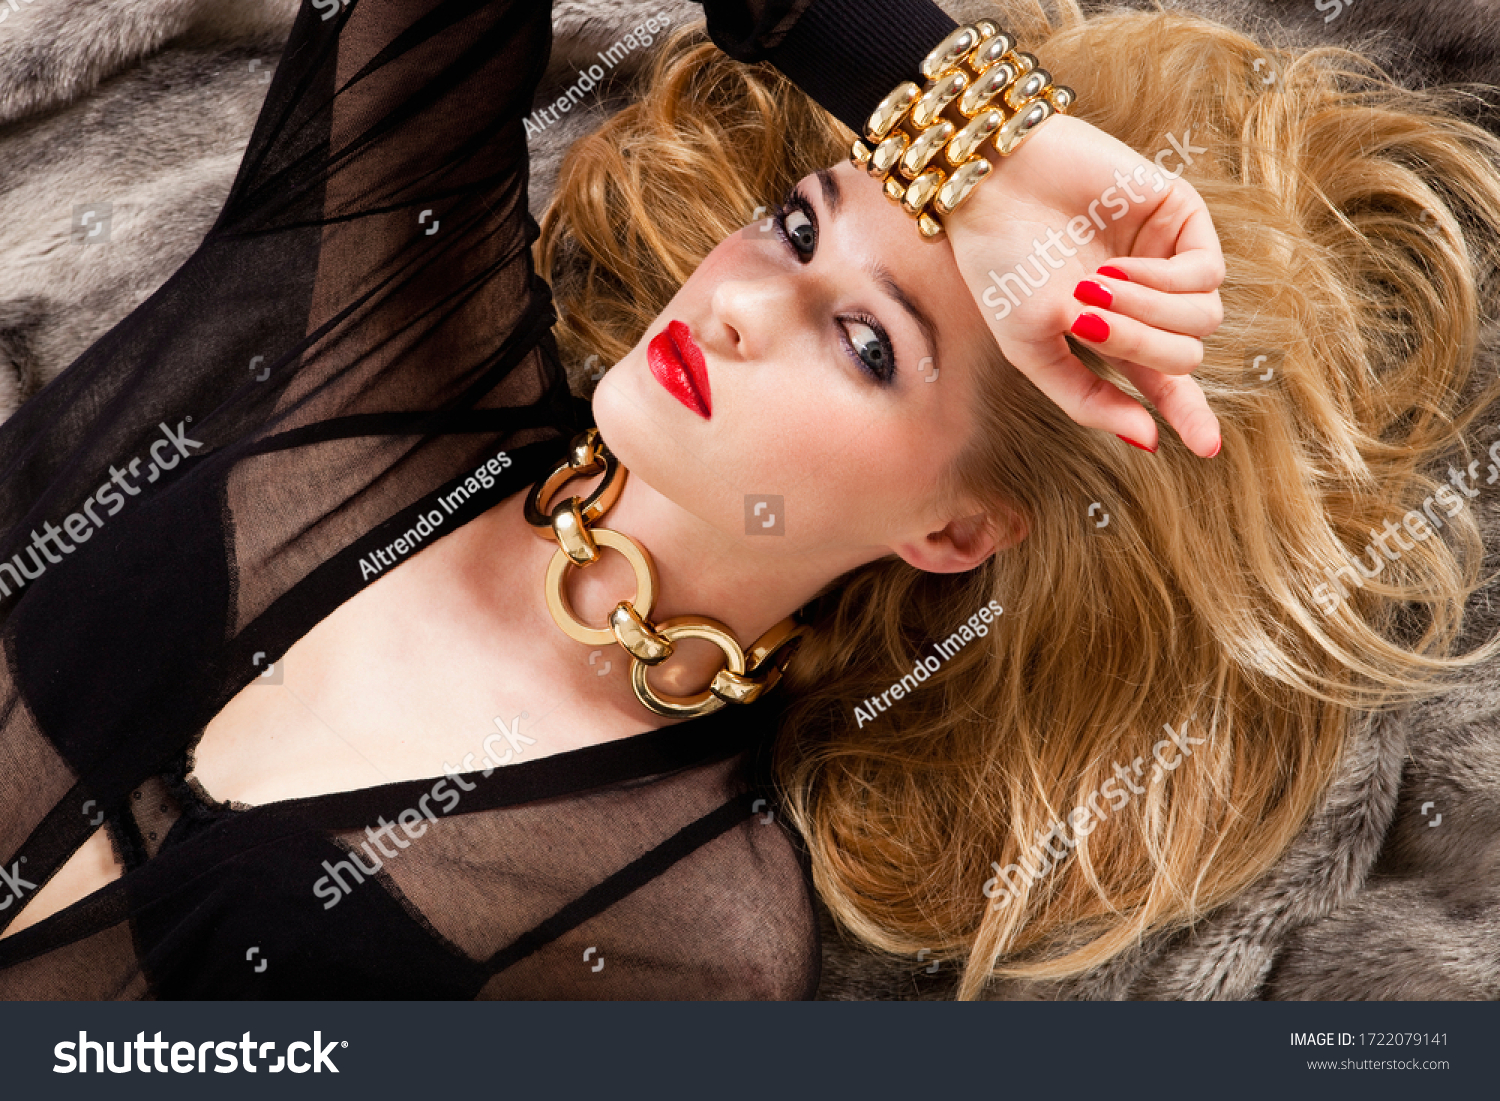 Glamorous young woman lying on bed, portrait #1722079141